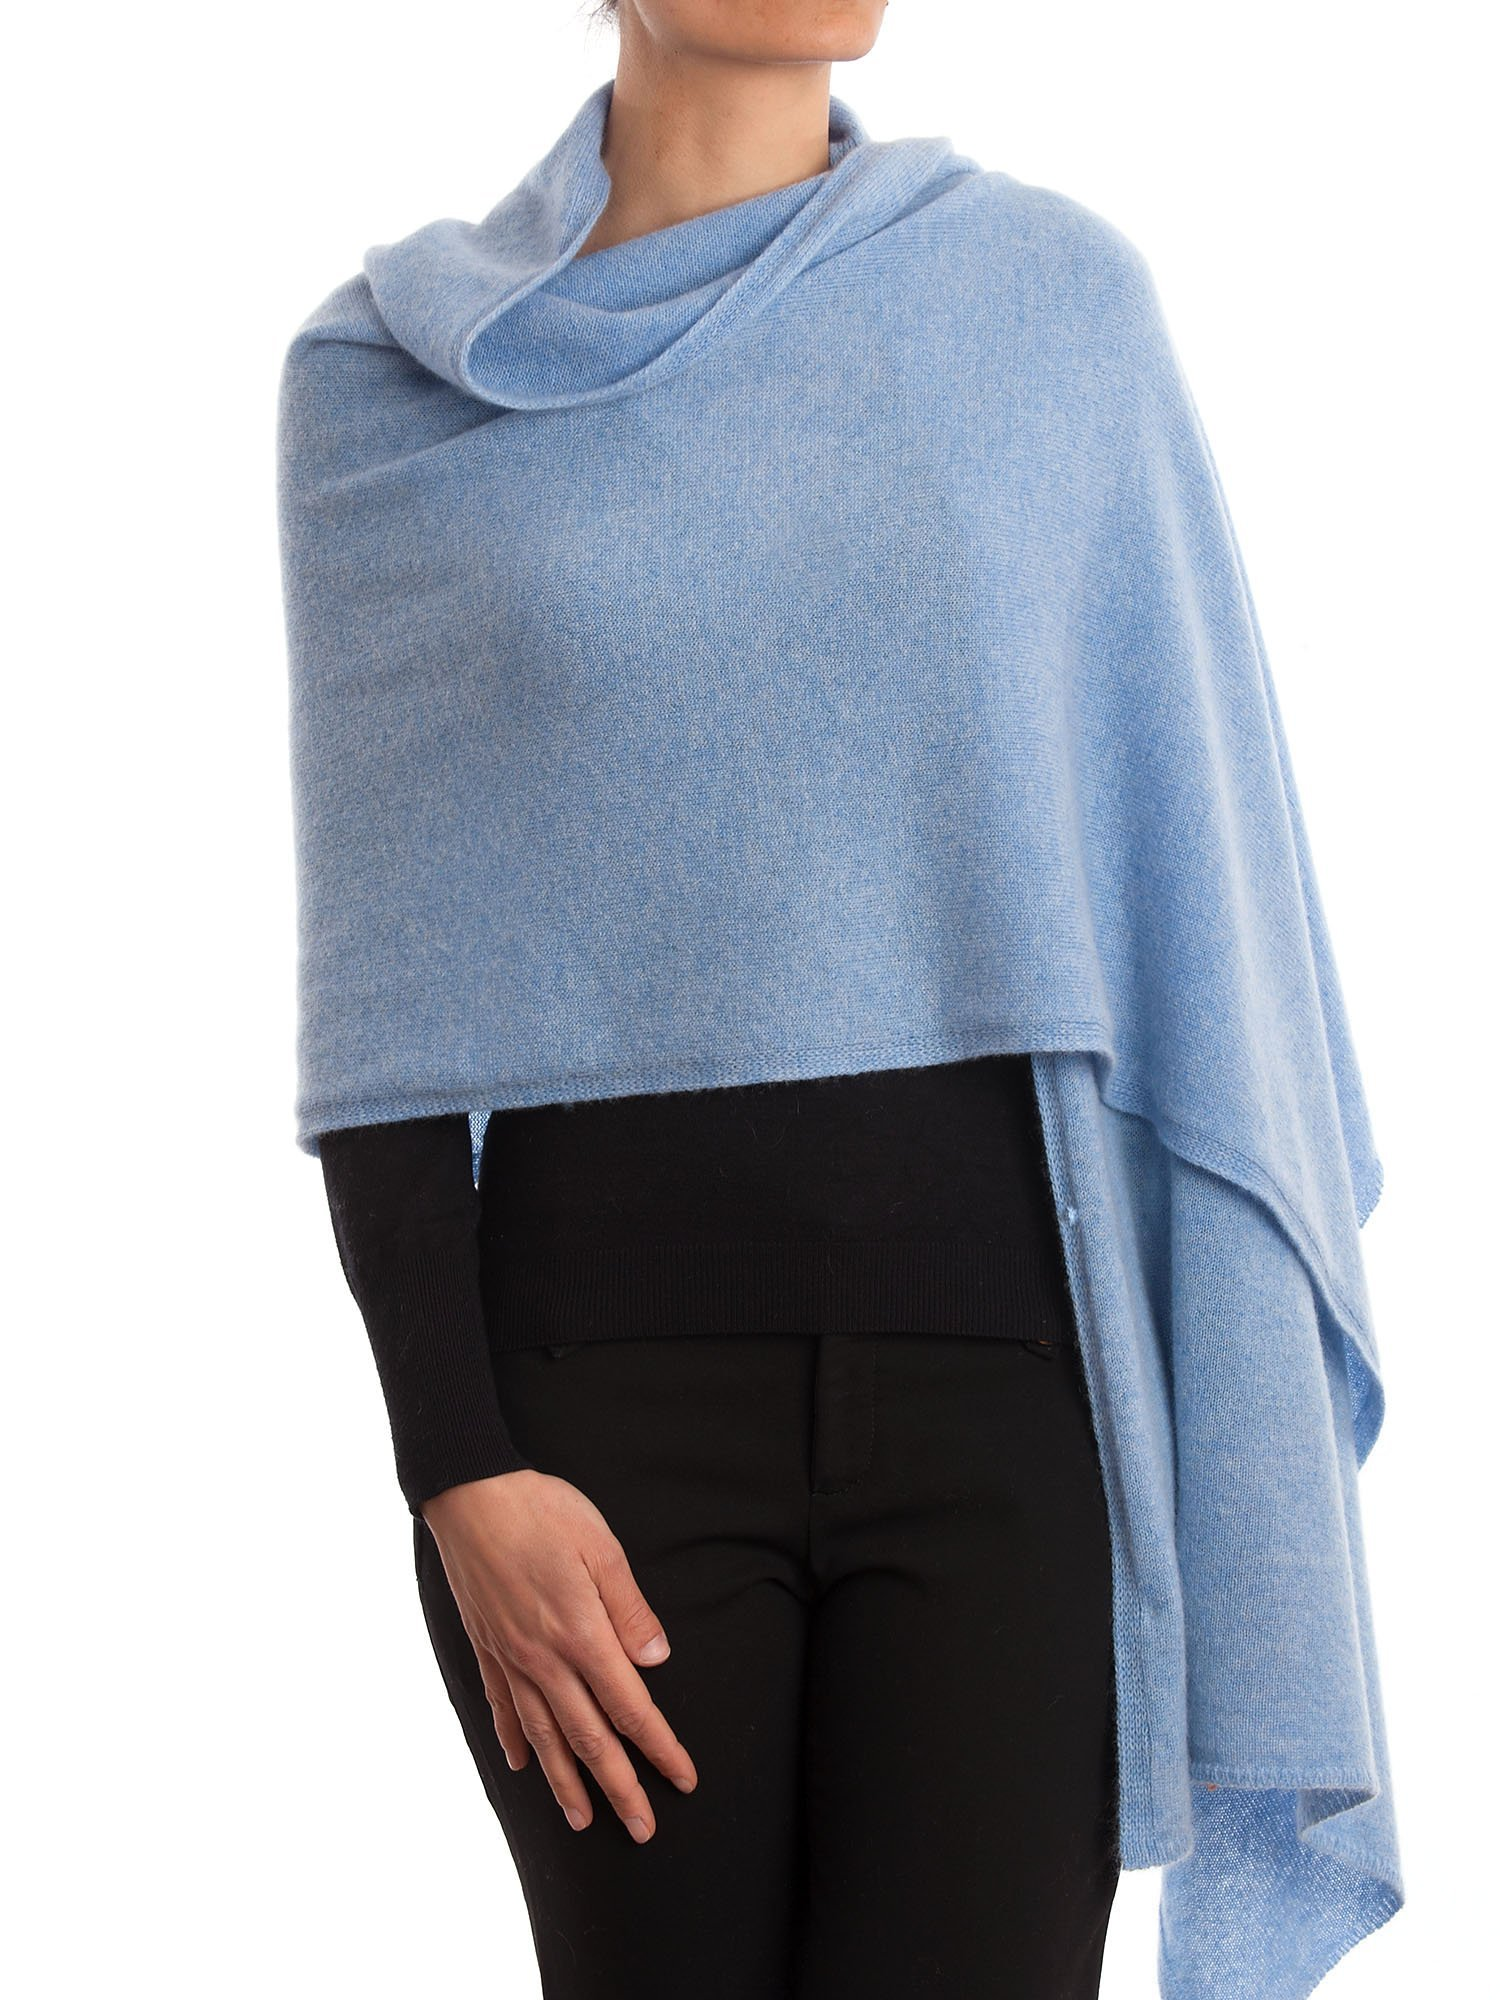 Dalle Piane Cashmere - Stole 100% cashmere - Made in Italy, Color: Sky, One size